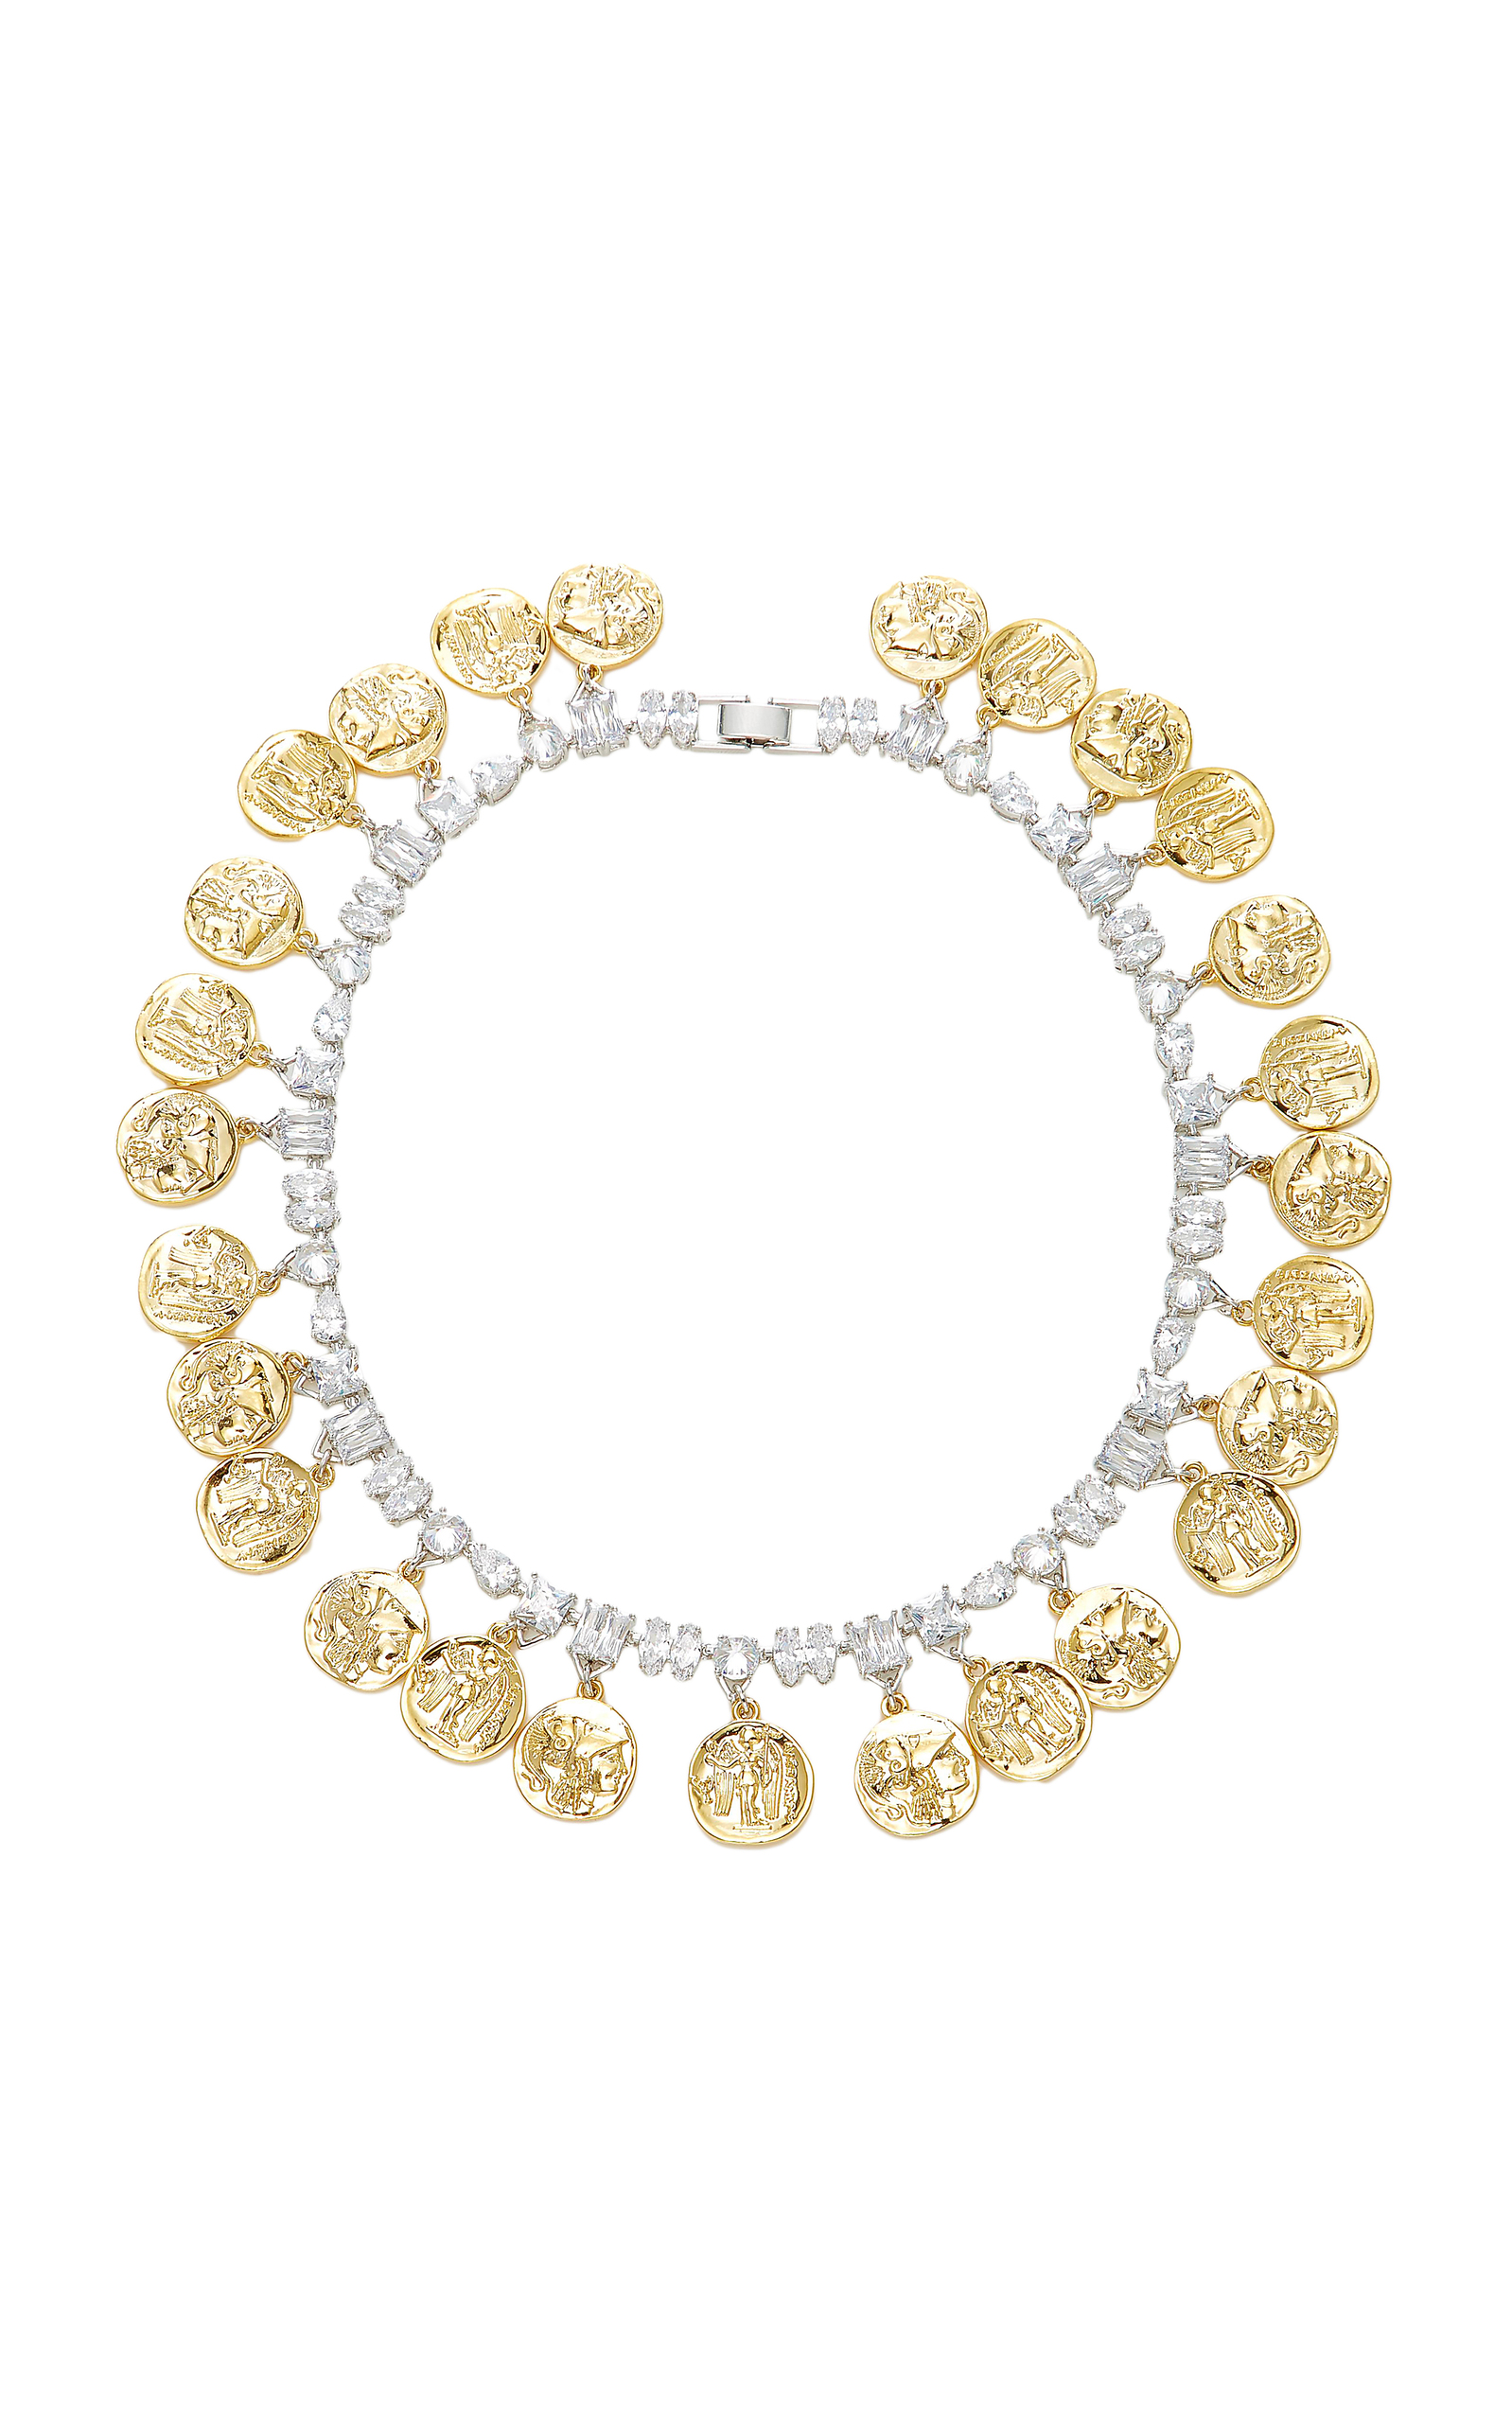 Gold-Tone Pave Crystal Choker Fallon 12zMed